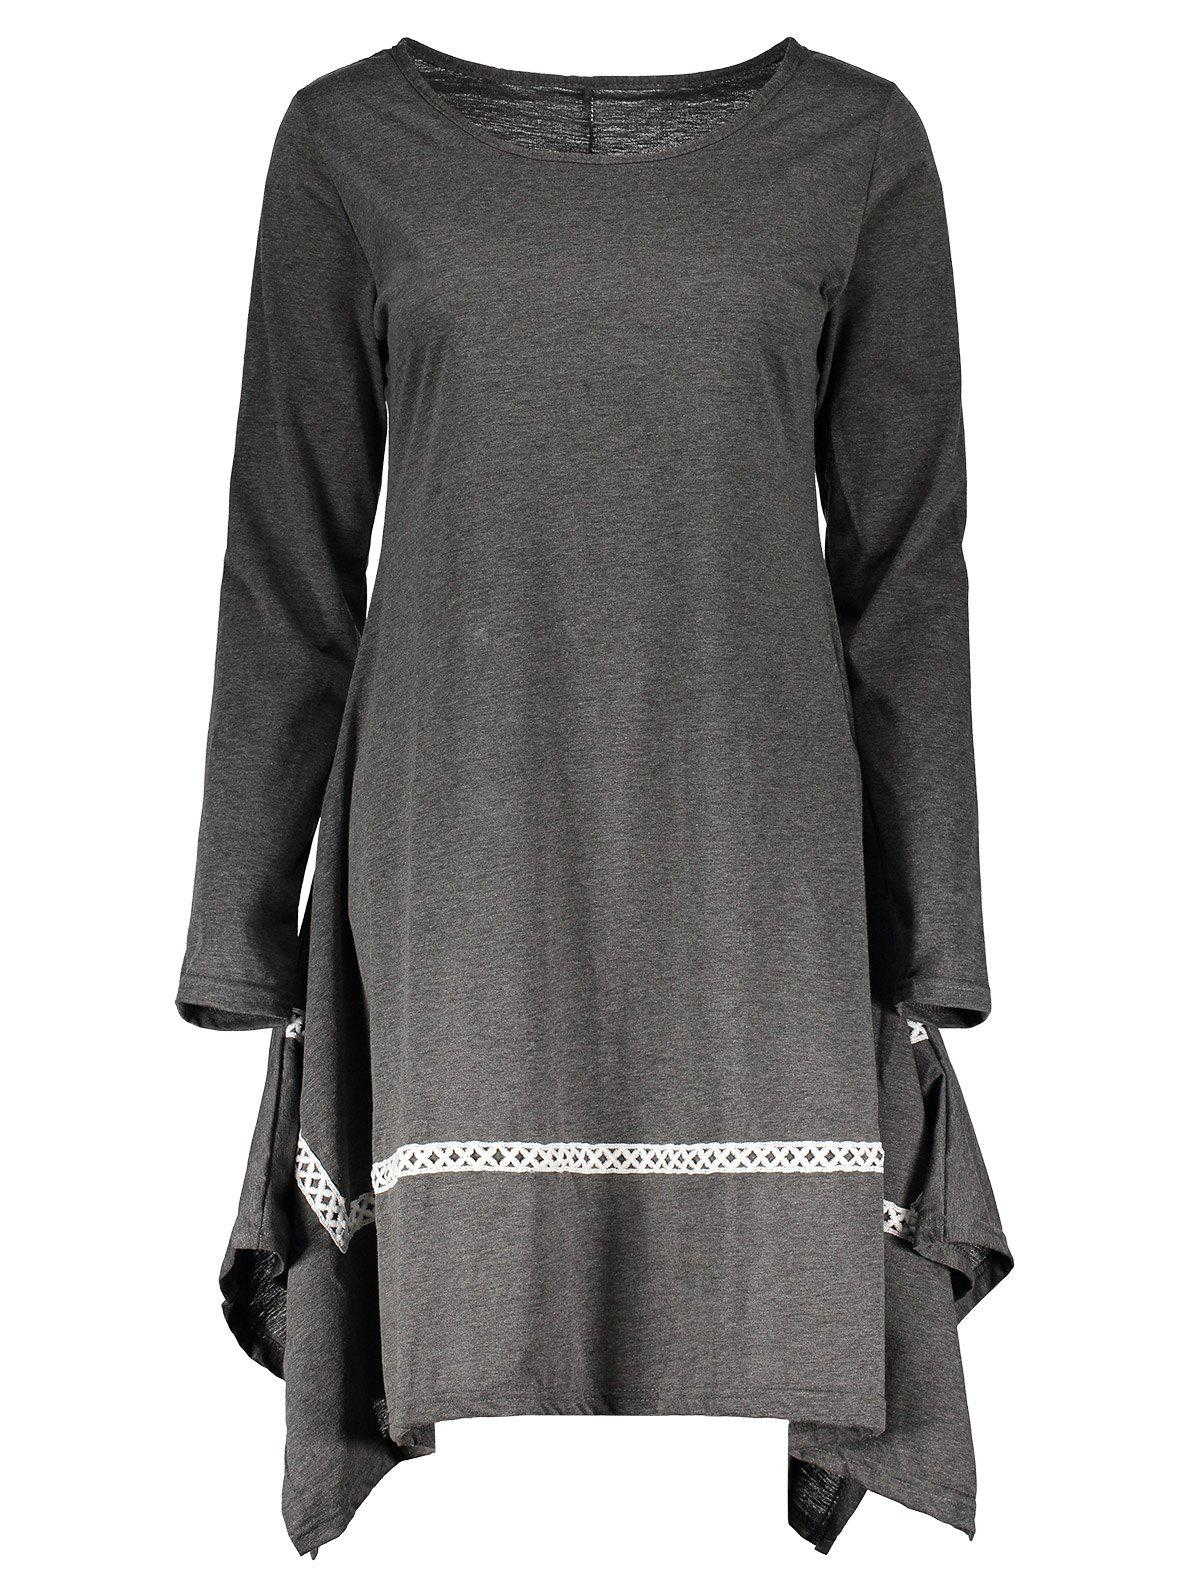 Stylish Round Neck Long Sleeve Spliced Asymmetrical Womens DressWOMEN<br><br>Size: XL; Color: GRAY; Style: Brief; Material: Polyester; Silhouette: Asymmetrical; Dresses Length: Knee-Length; Neckline: Round Collar; Sleeve Length: Long Sleeves; Pattern Type: Patchwork; With Belt: No; Season: Spring,Fall; Weight: 0.392KG; Package Contents: 1 x Dress;